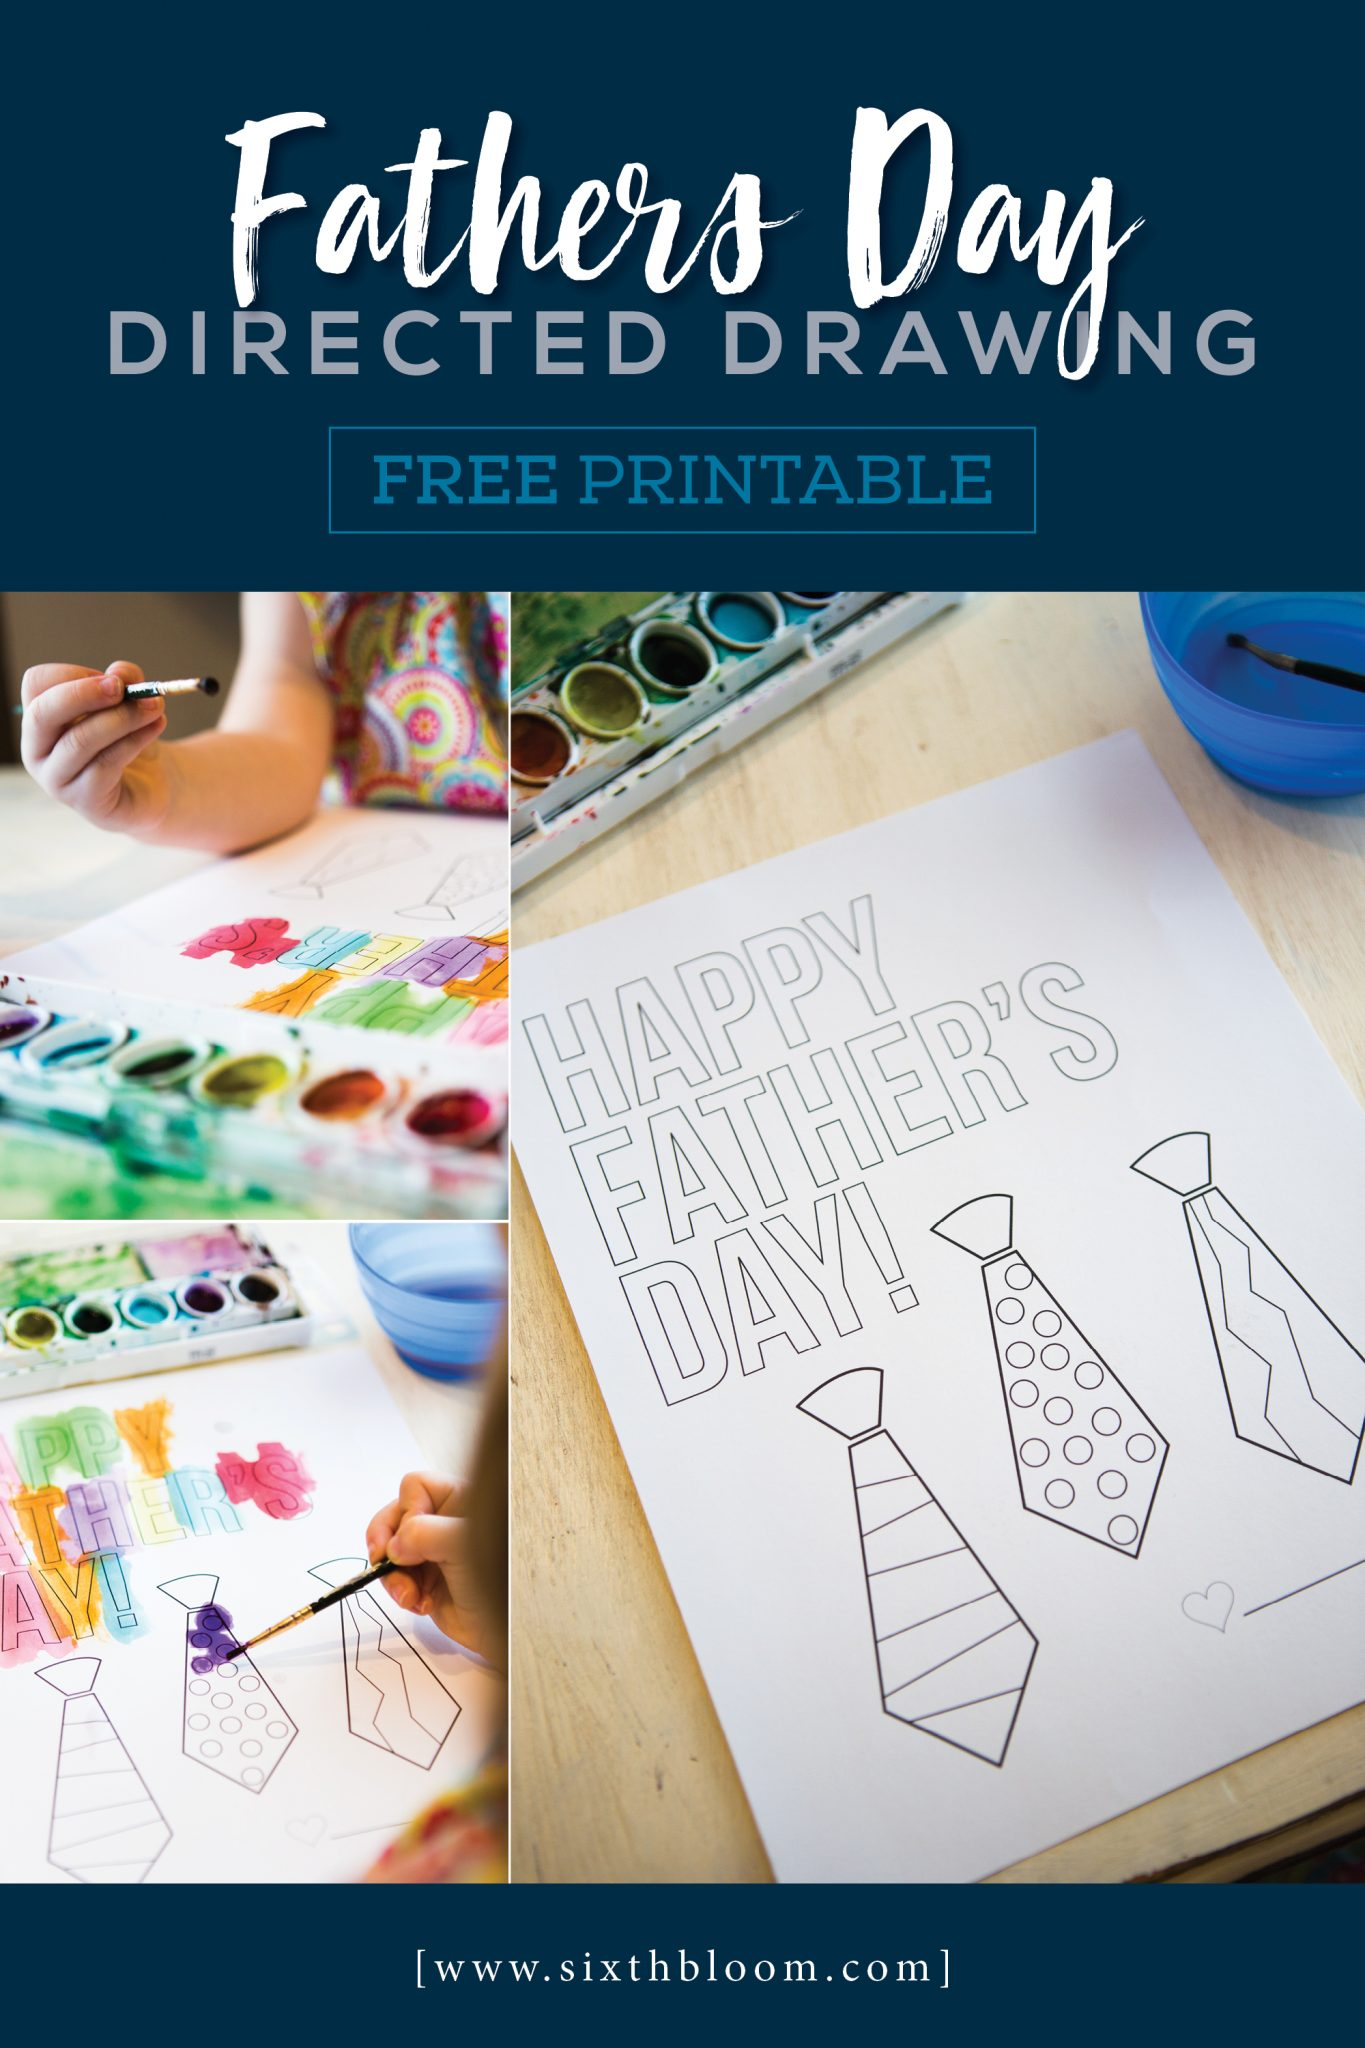 Fathers Day Directed Drawing